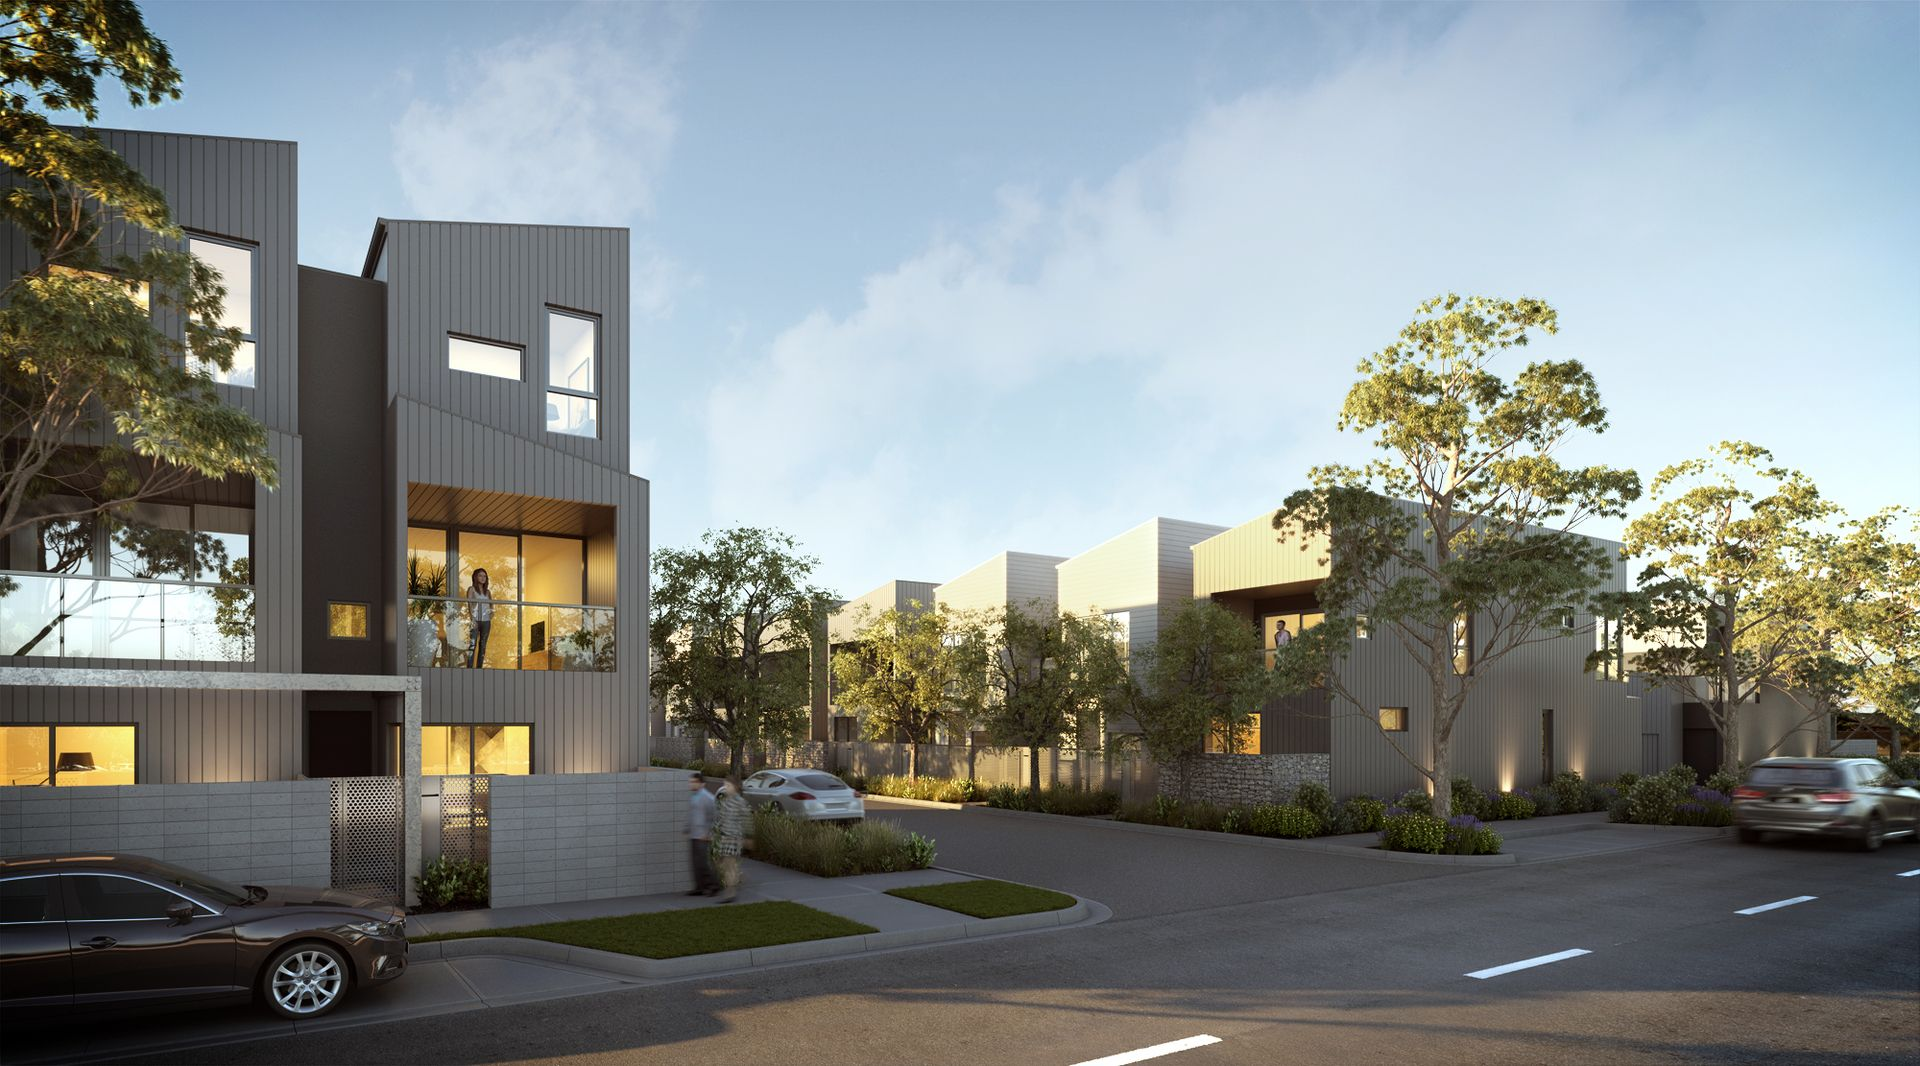 Lot 64 - LUXE 1 - Du CNR Murnong Street and Lawler Street, Point Cook VIC 3030, Image 1